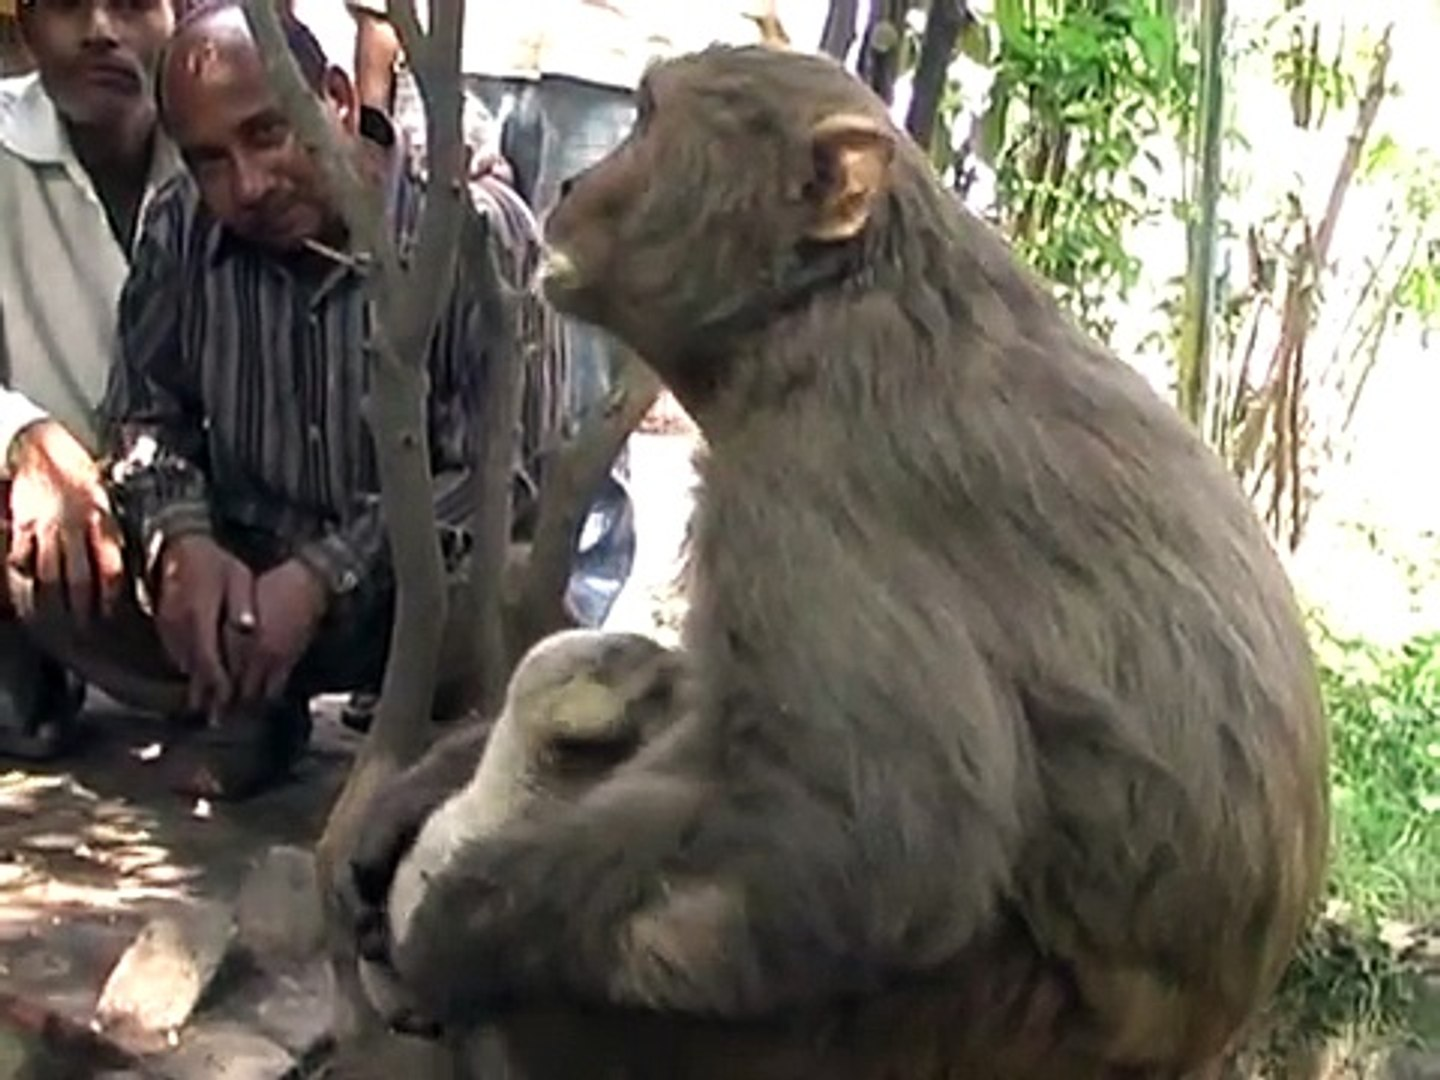 MONKEY BREAST FEEDING TO A DOG BABY | HOW CAN BE THEY SO KIND | MUST SEE PURE LOVE